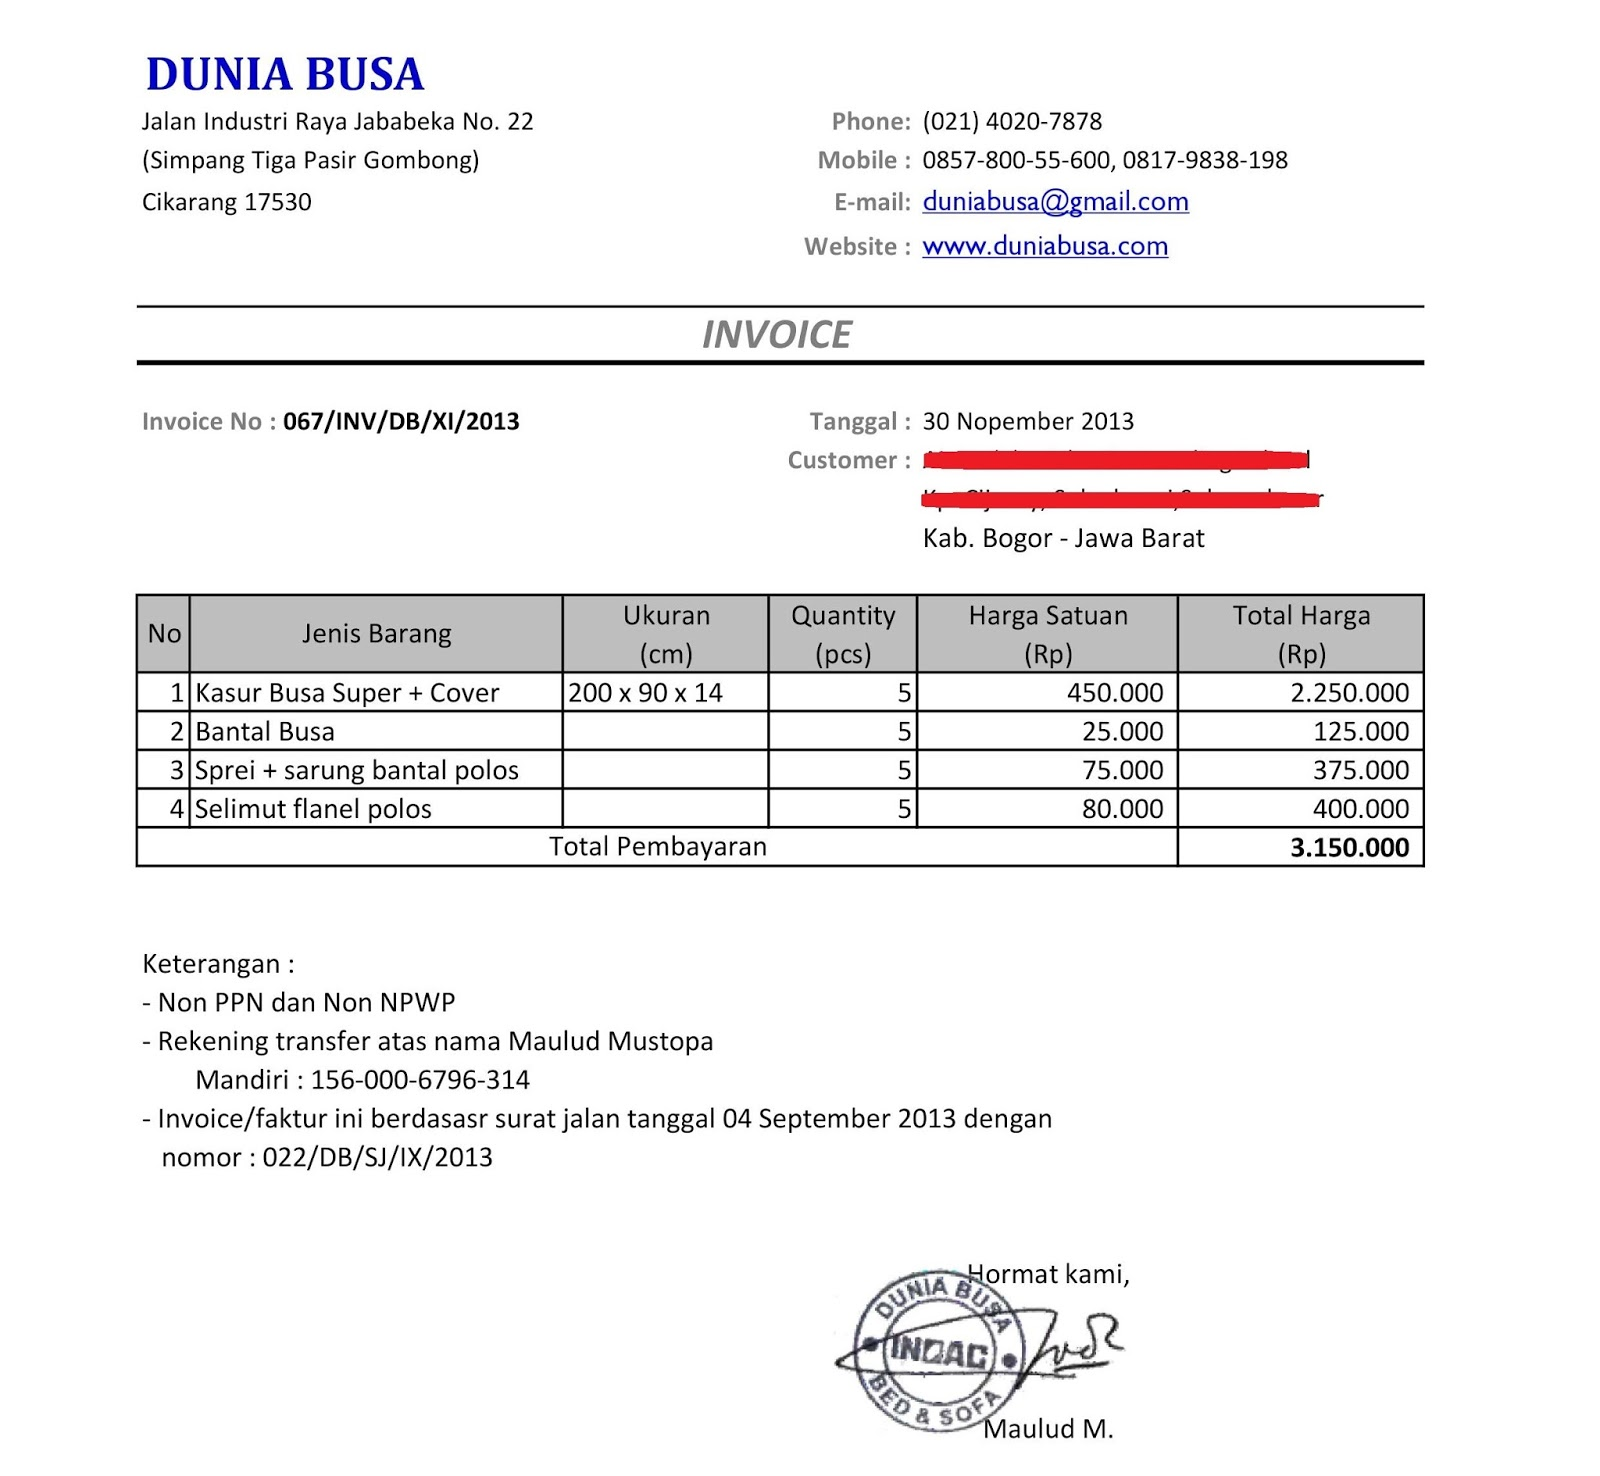 Bringjacobolivierhomeus  Unusual Free Invoice Online  Create Invoice Online  Invoice Template  With Glamorous Contoh Format Invoice Atau Surat Tagihan  Brankas Arsip  Free Invoice Online With Nice Commercial Invoice Form Pdf Also Resend Invoice In Addition How To Make A Commercial Invoice And Paypal Generate Invoice As Well As Cargo Invoice Additionally Software Development Invoice From Sklepco With Bringjacobolivierhomeus  Glamorous Free Invoice Online  Create Invoice Online  Invoice Template  With Nice Contoh Format Invoice Atau Surat Tagihan  Brankas Arsip  Free Invoice Online And Unusual Commercial Invoice Form Pdf Also Resend Invoice In Addition How To Make A Commercial Invoice From Sklepco